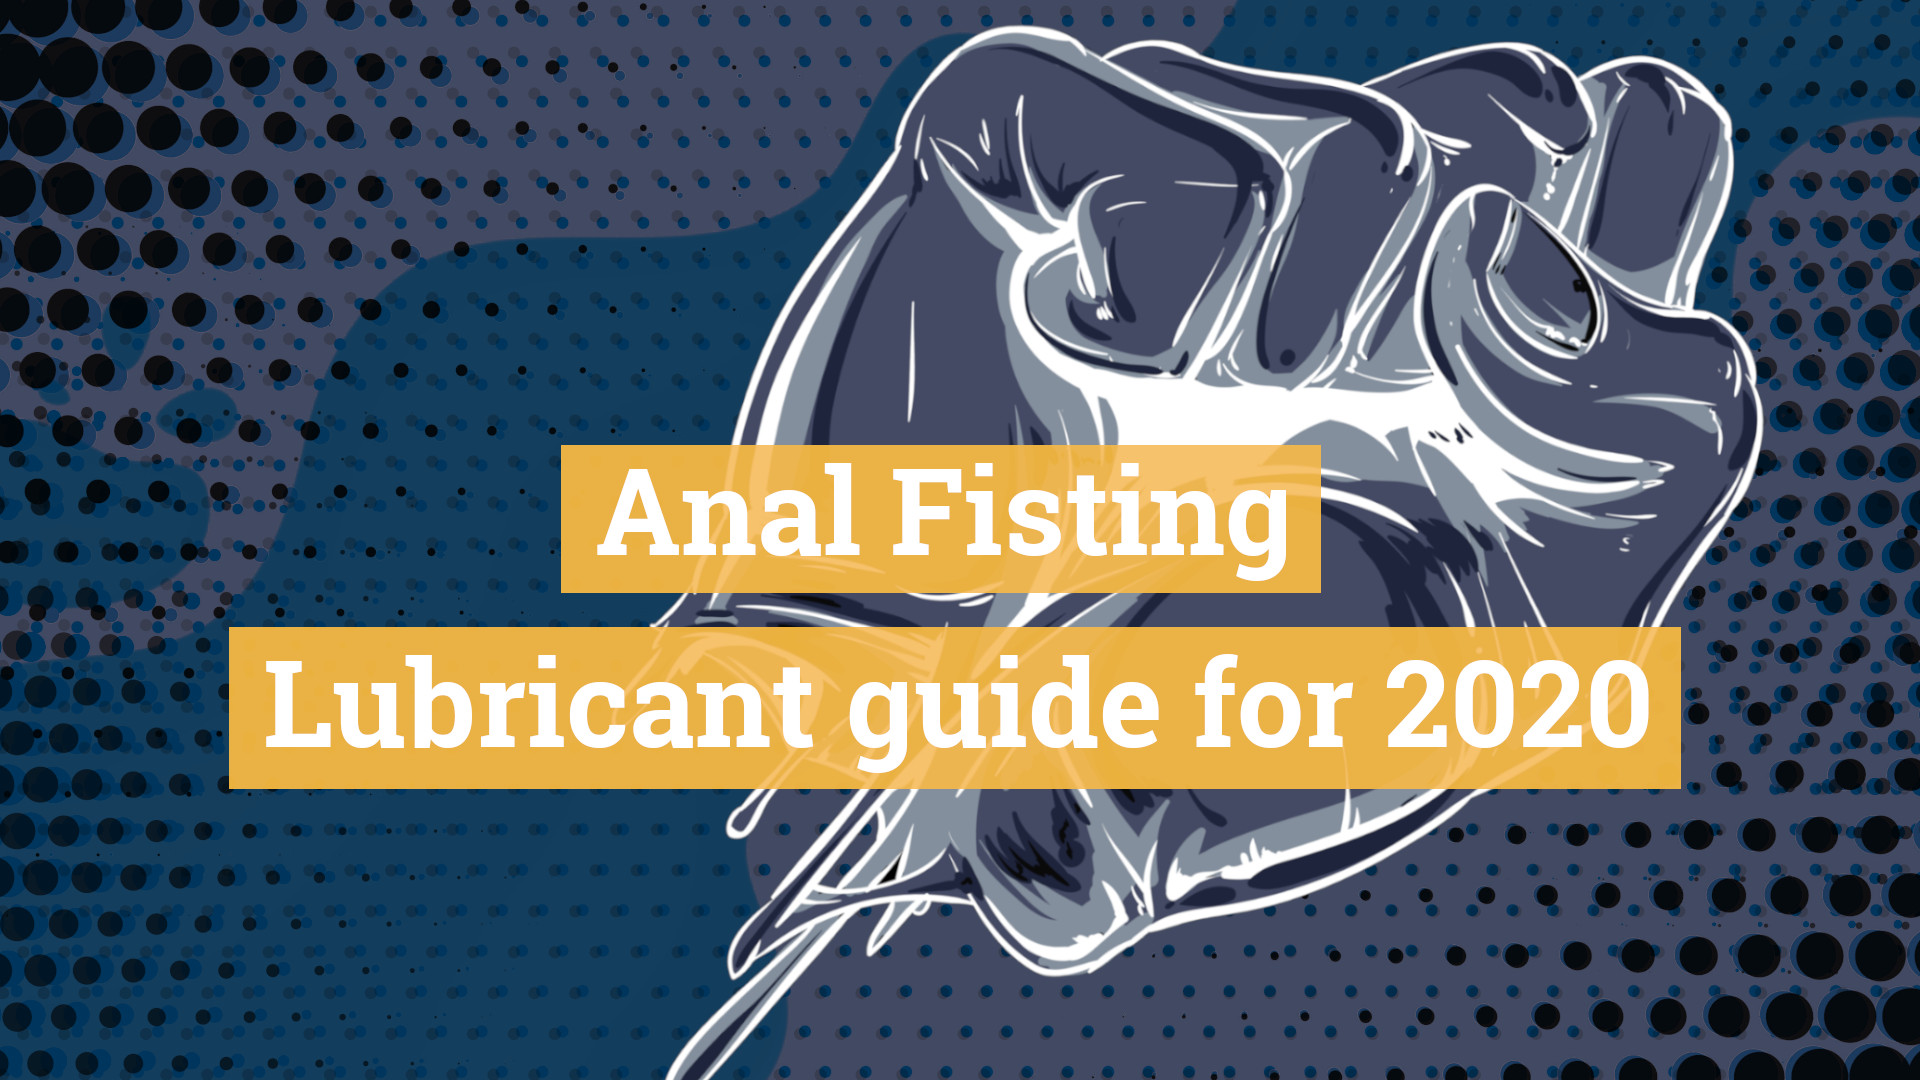 Anal Fisting Lubricant Guide